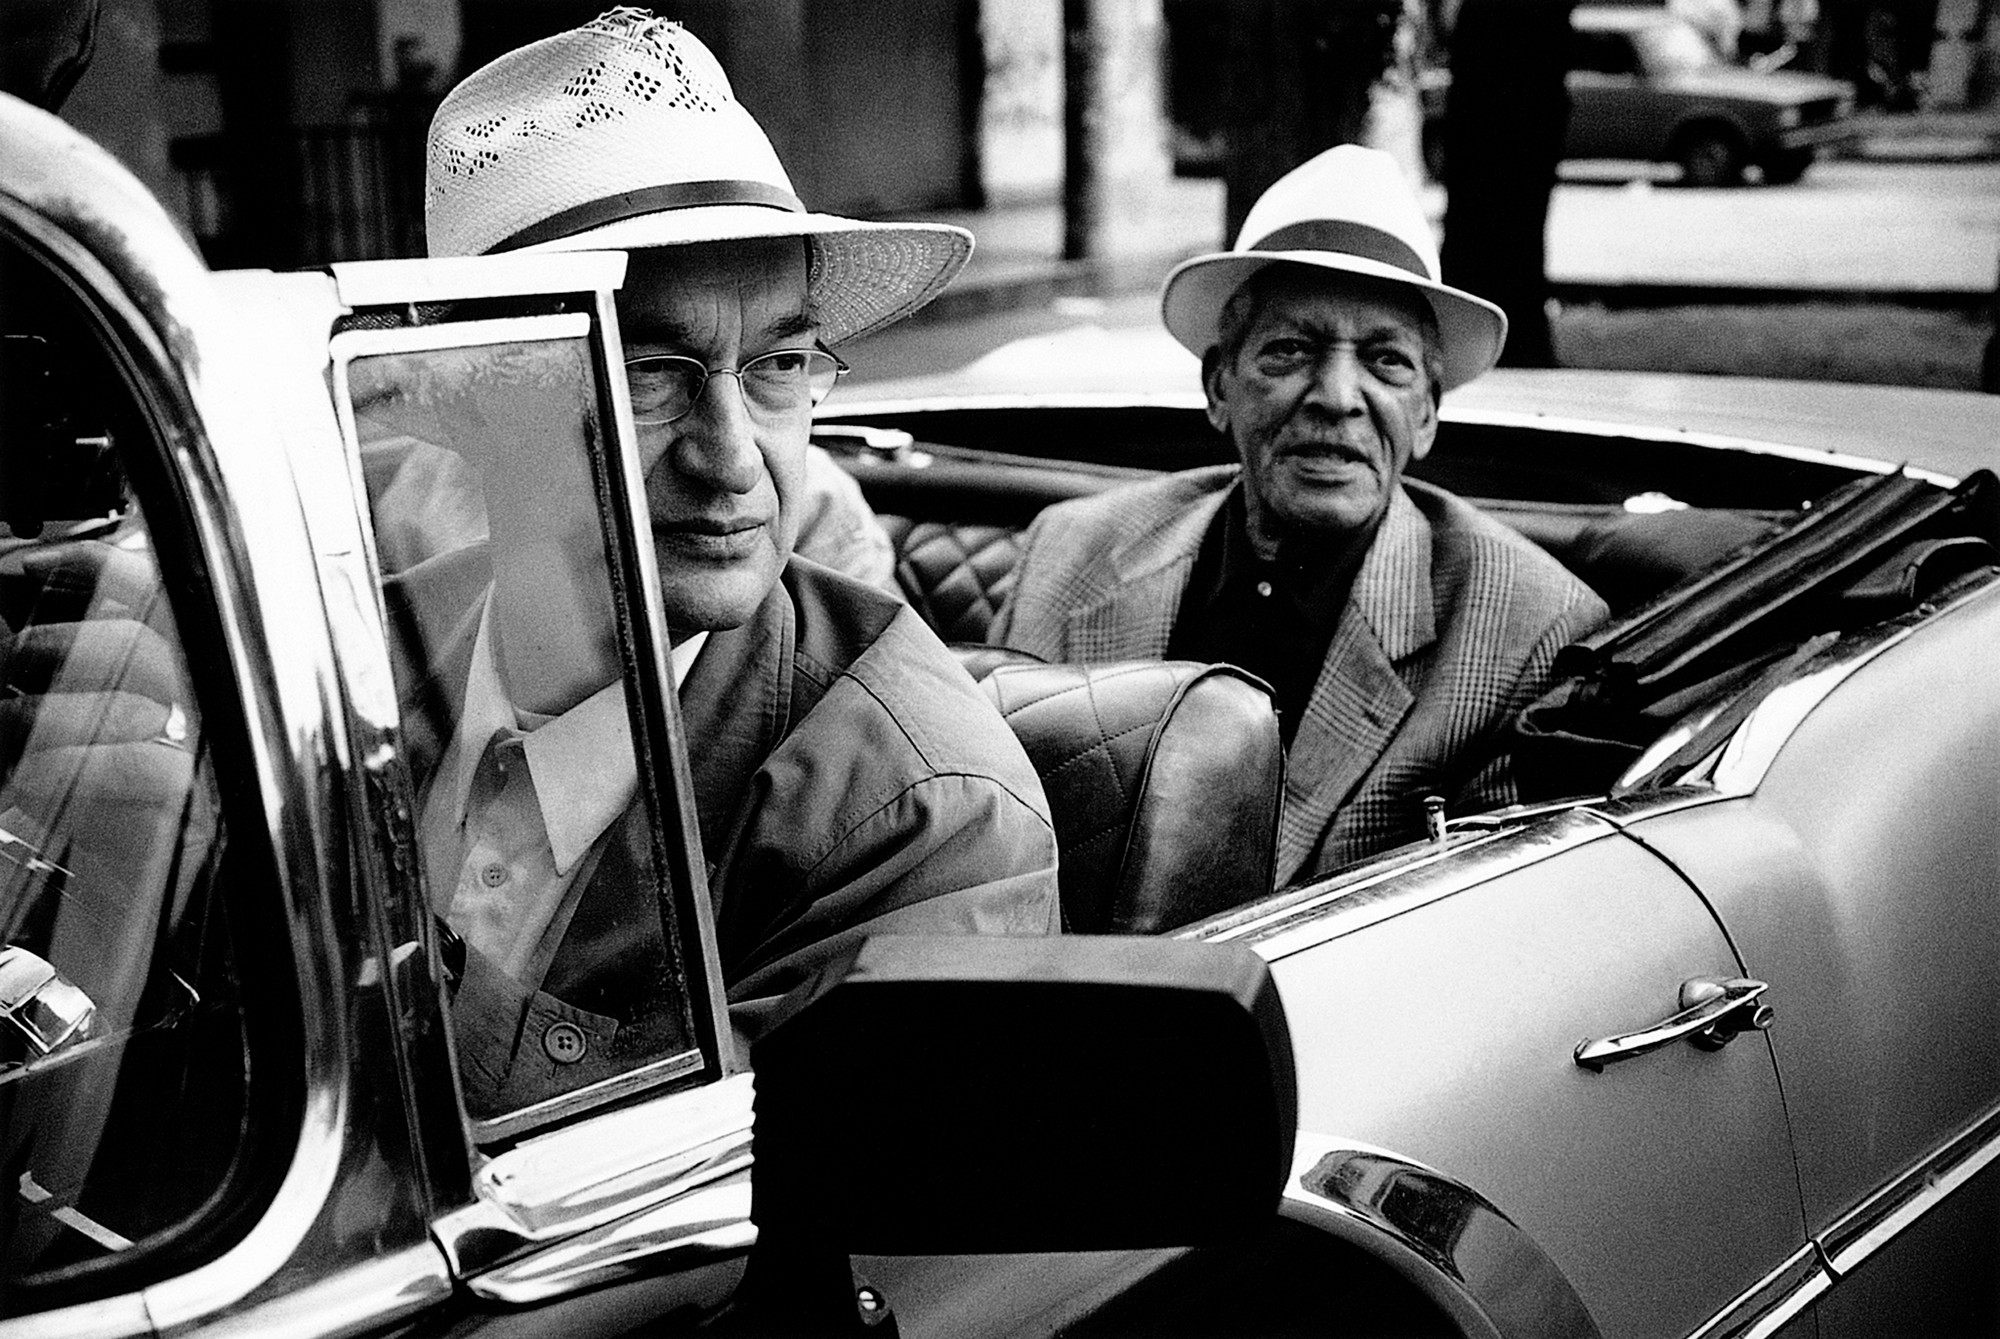 Buena Vista Social Club. 1999. Germany/USA. Directed by Wim Wenders. Courtesy of Wim Wenders Stiftung 2014